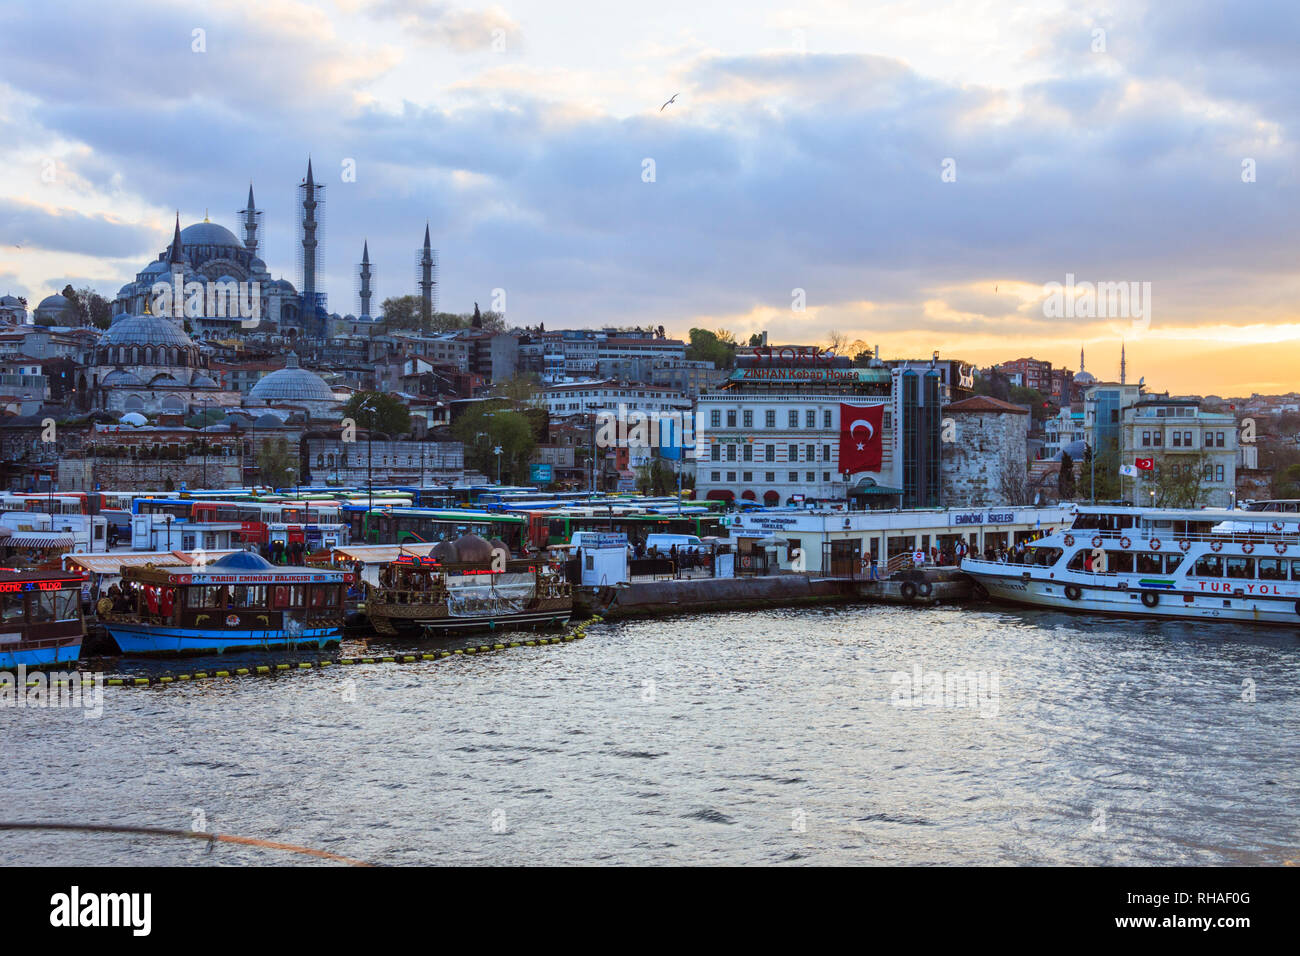 Istanbul, Turkey : Cityscape at sunset with the Suleymaniye mosque and the floating fish restaurants on the Golden Horn. - Stock Image